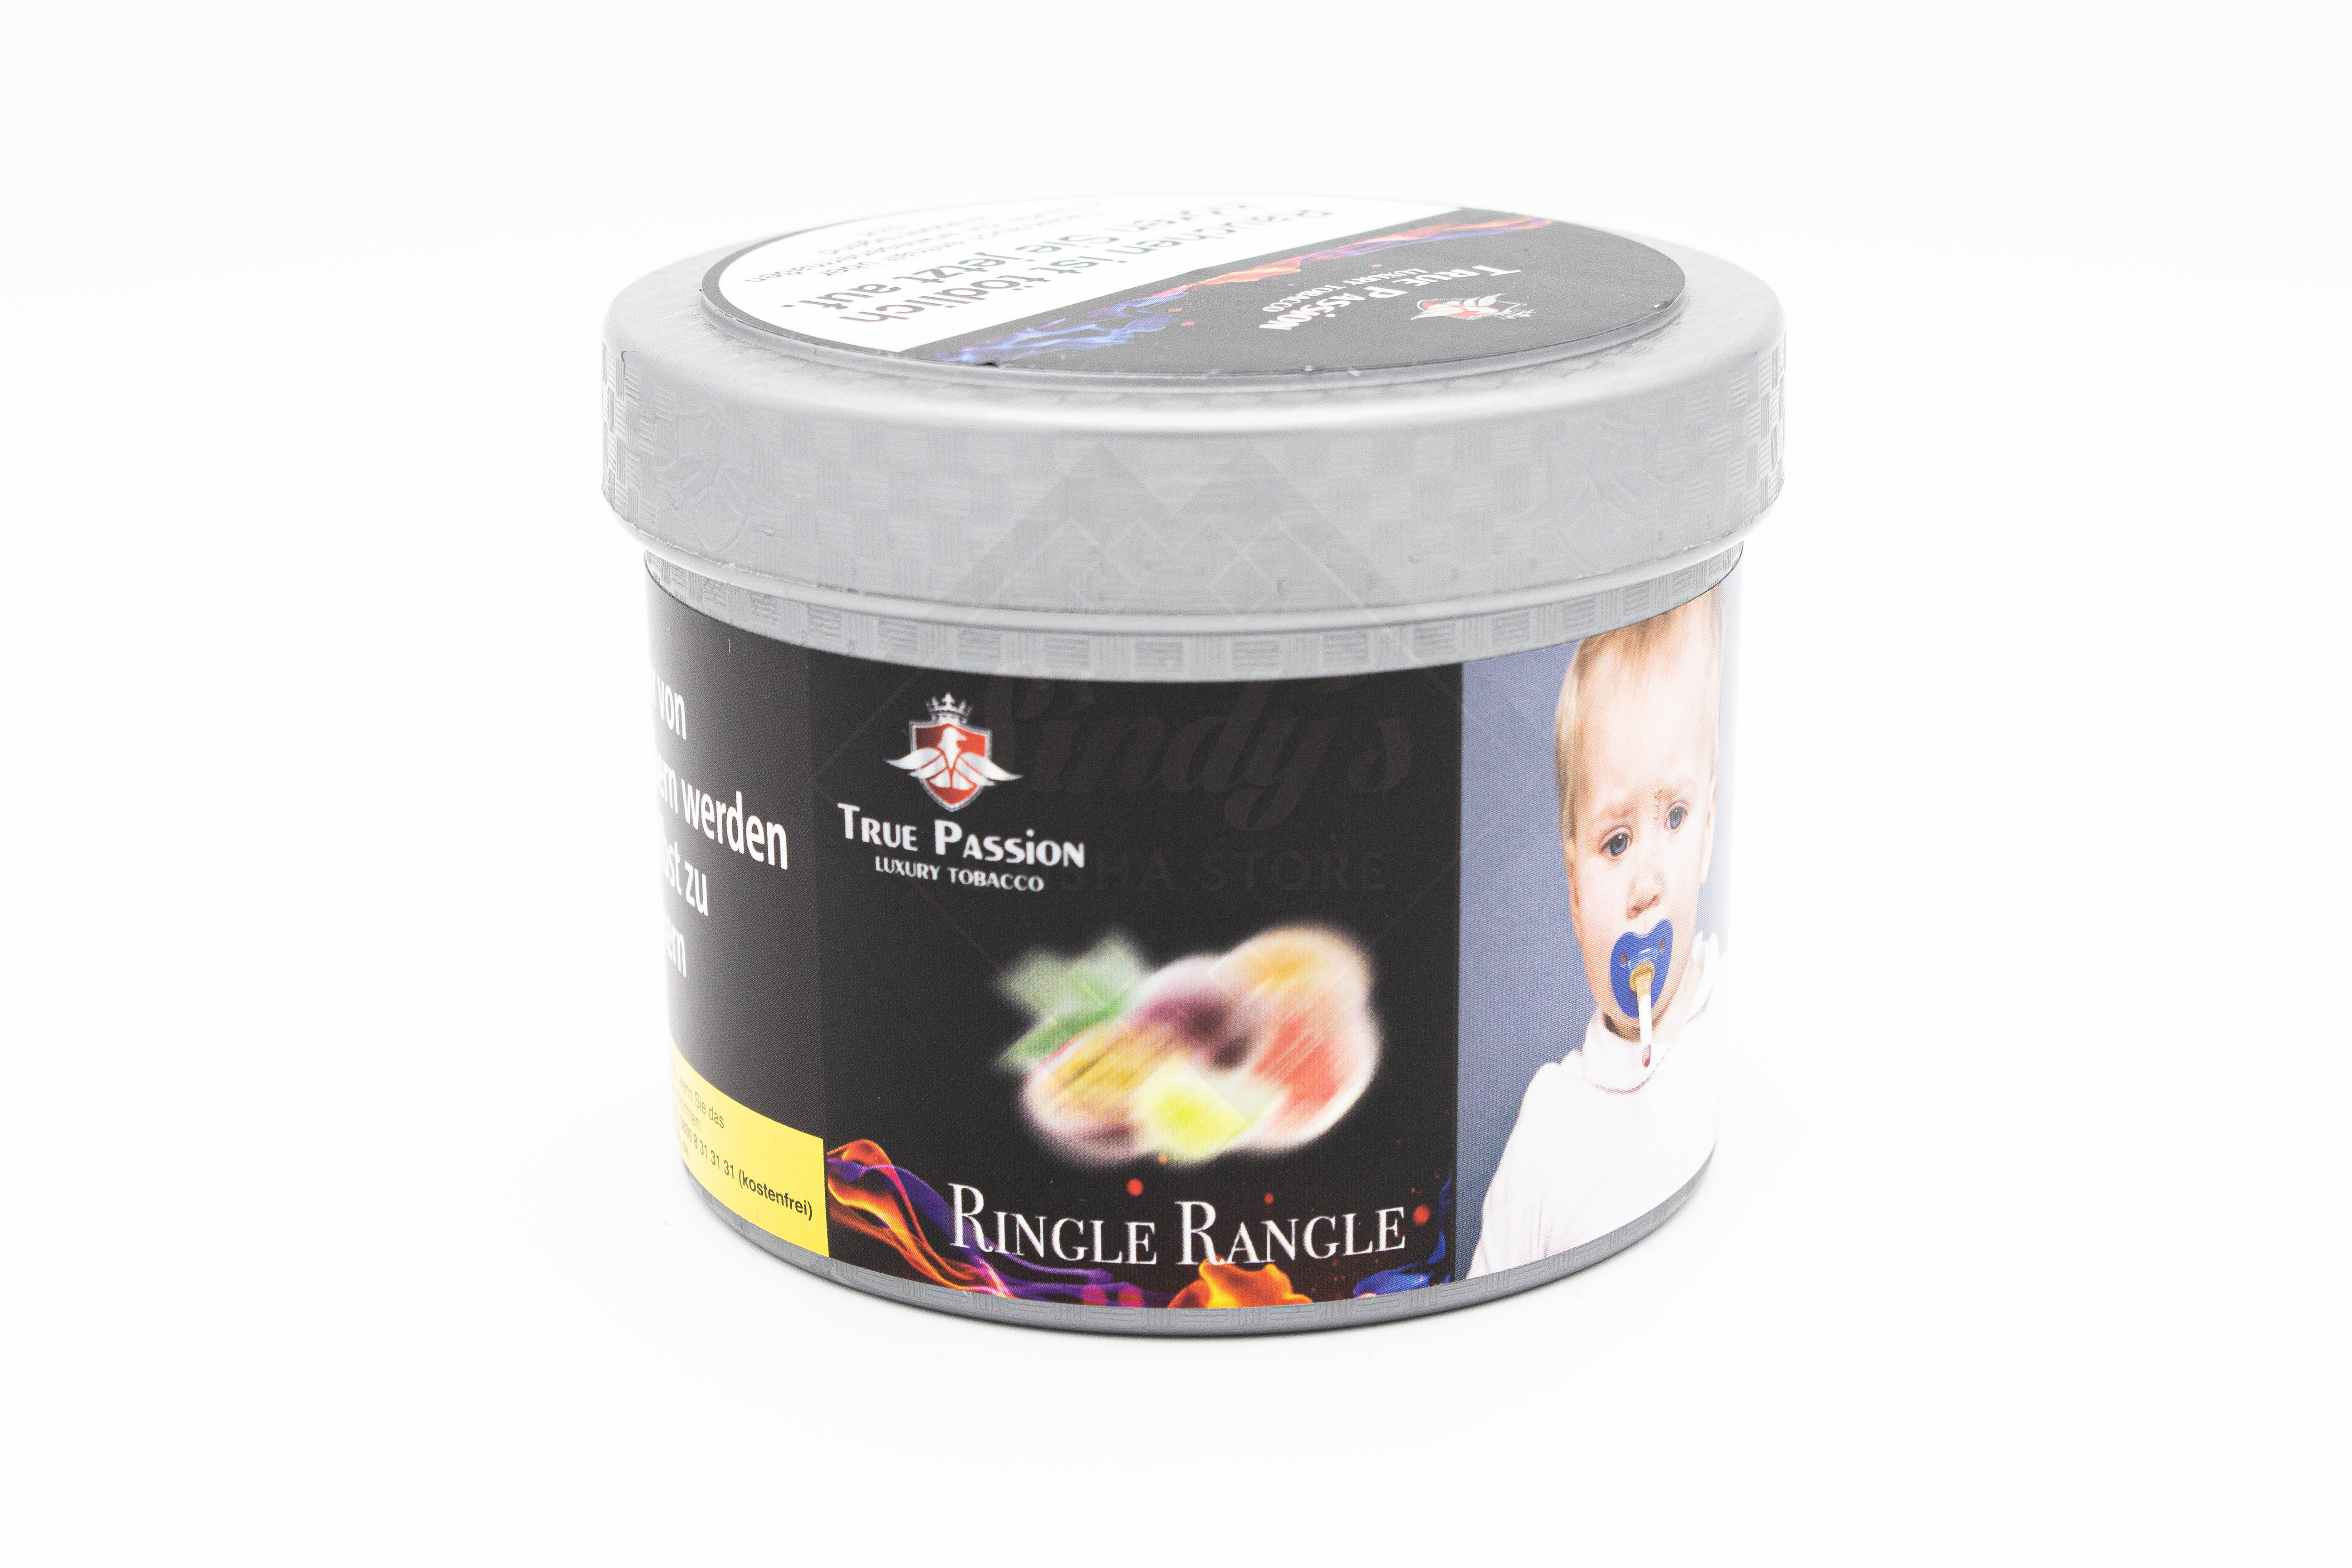 True Passion Tobacco - Ringle Rangle 200g